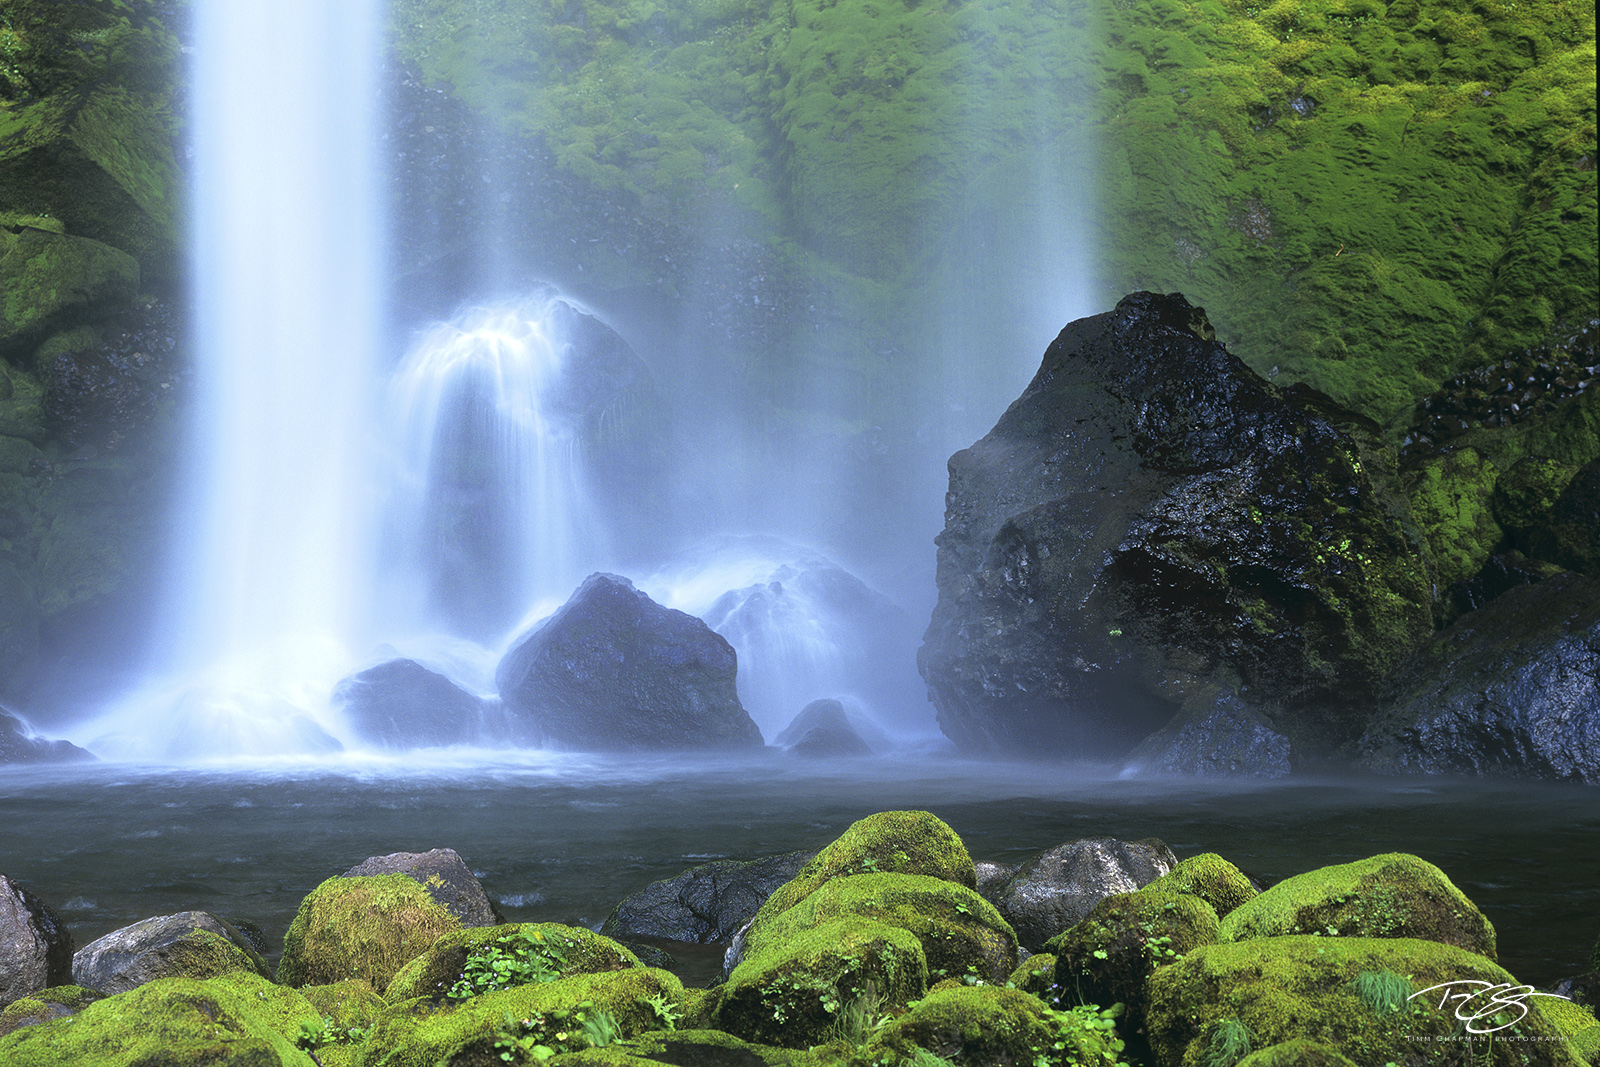 The spectacular Elowah Falls provide a wealth of precipitation to the mossy forest along the Columbia River Gorge